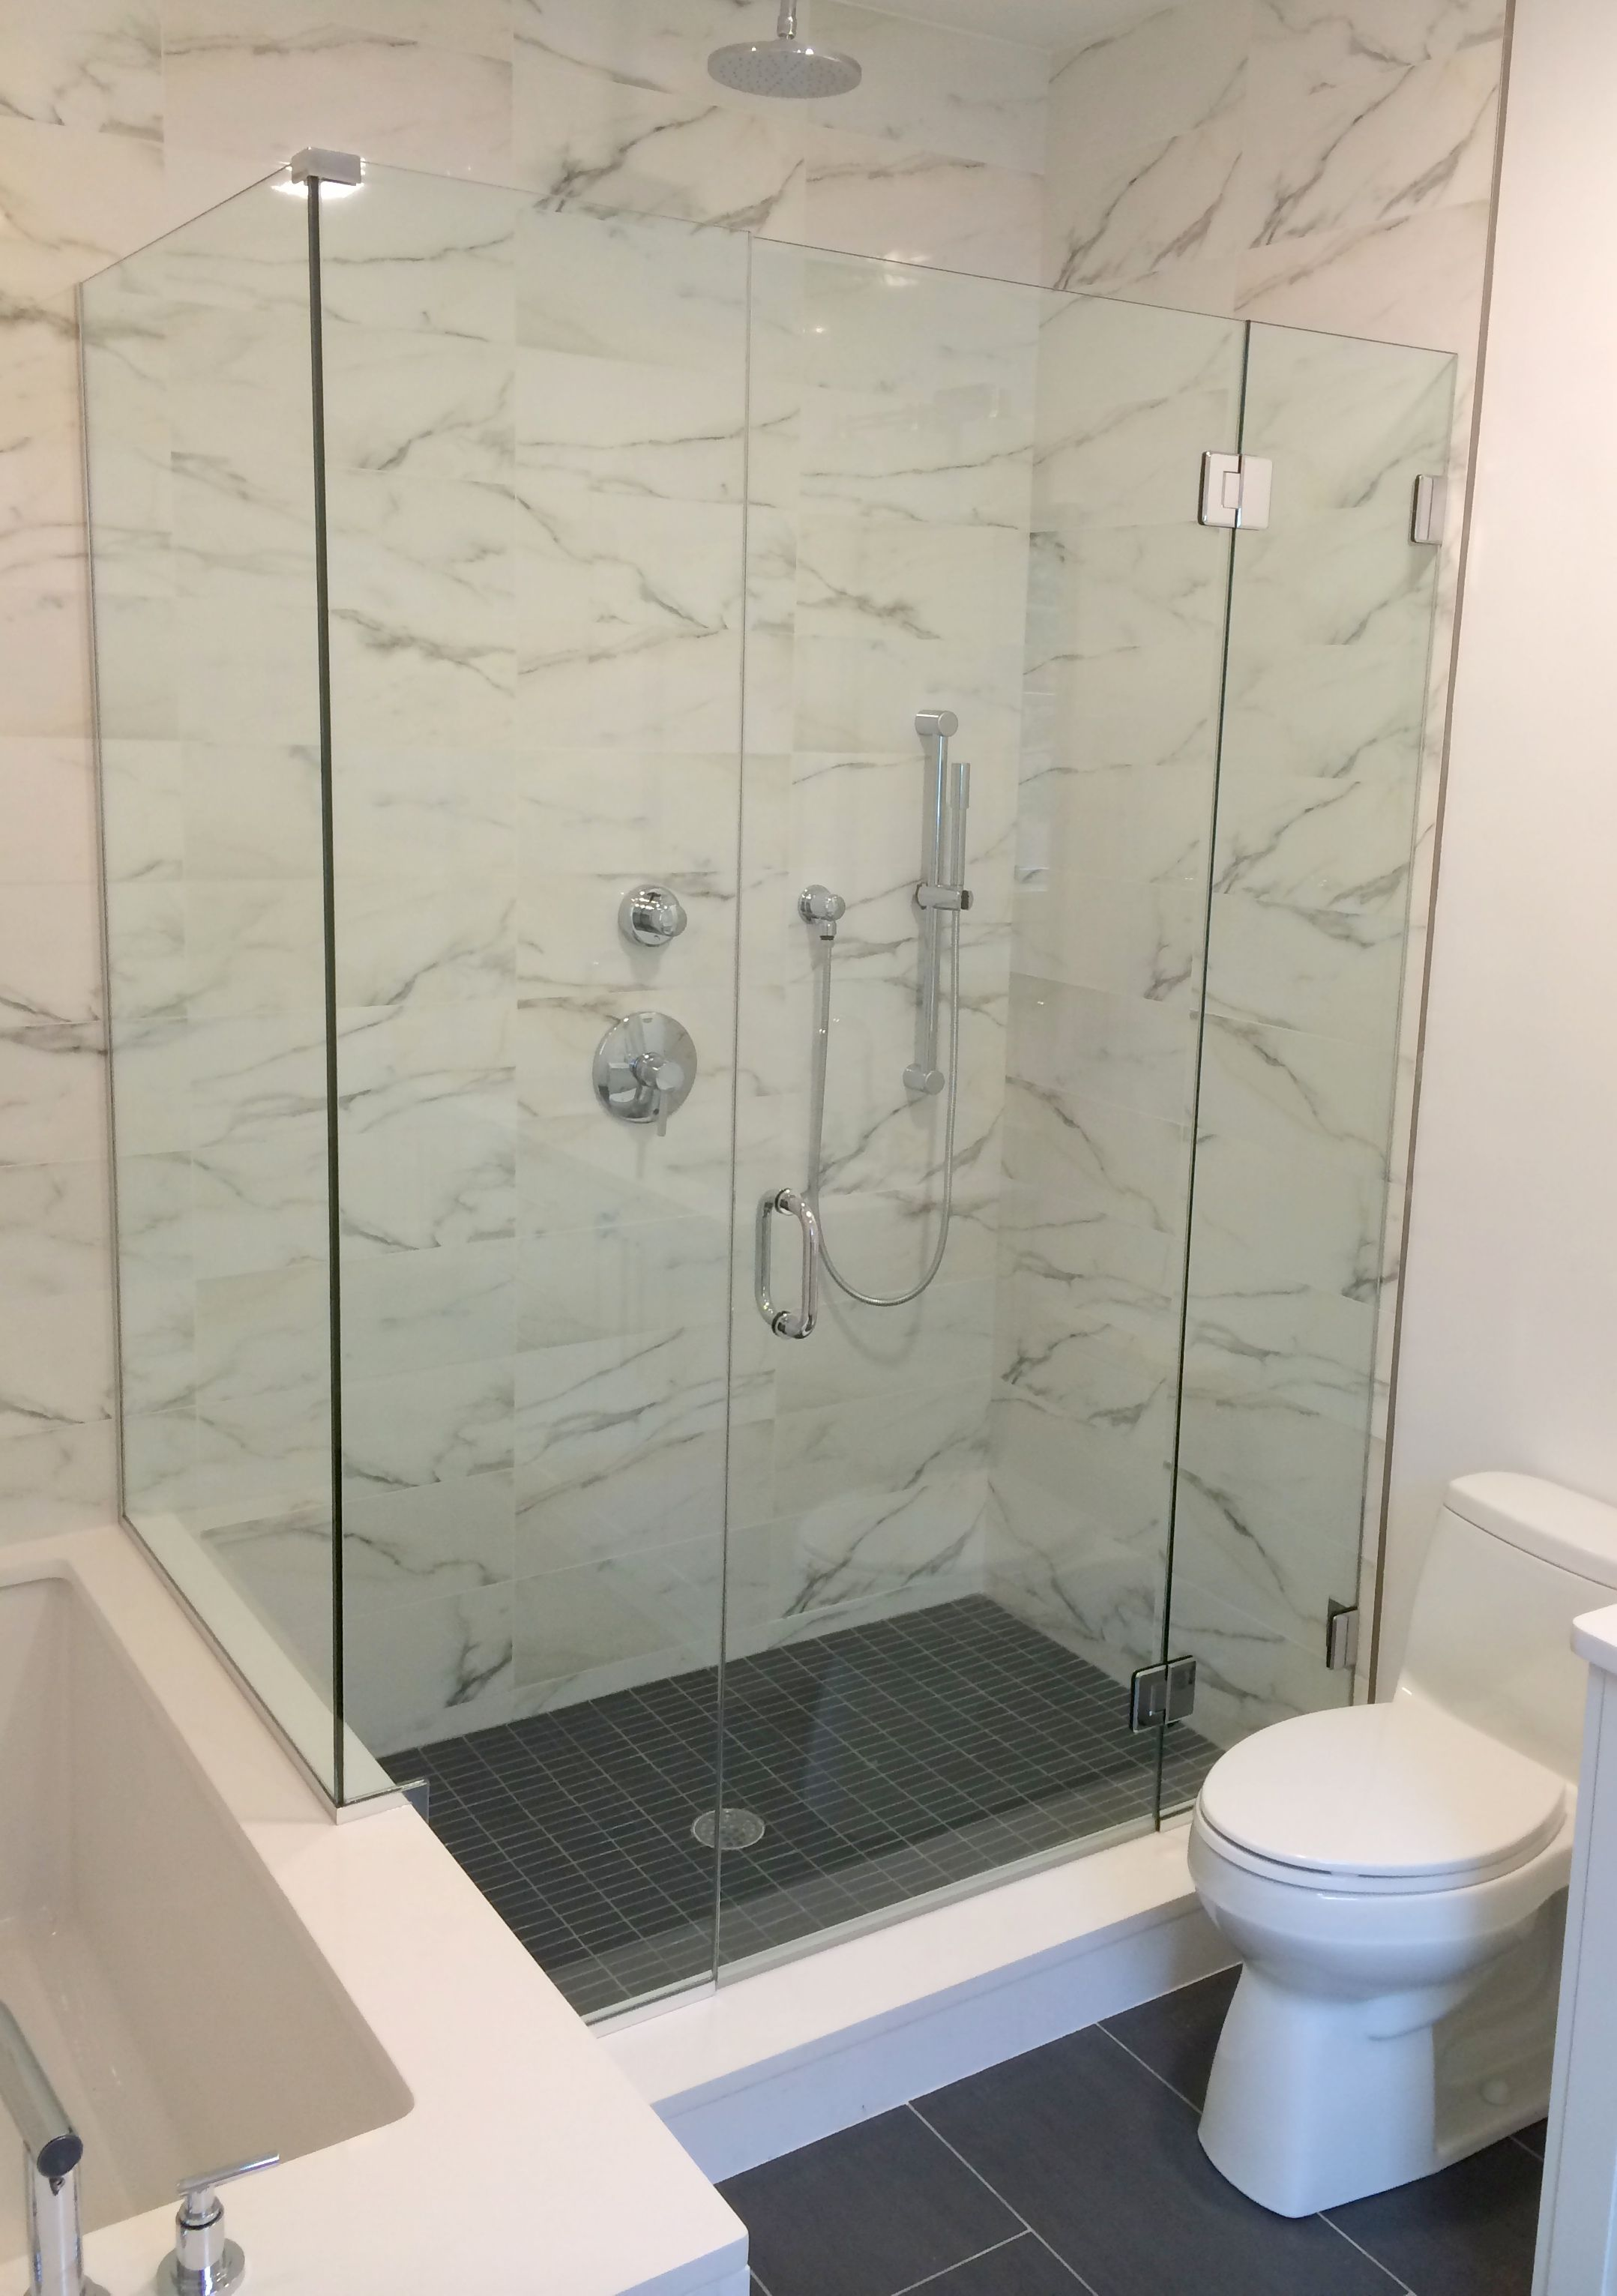 frameless shower doors can also be supported by glass clips and horizontal uchannel